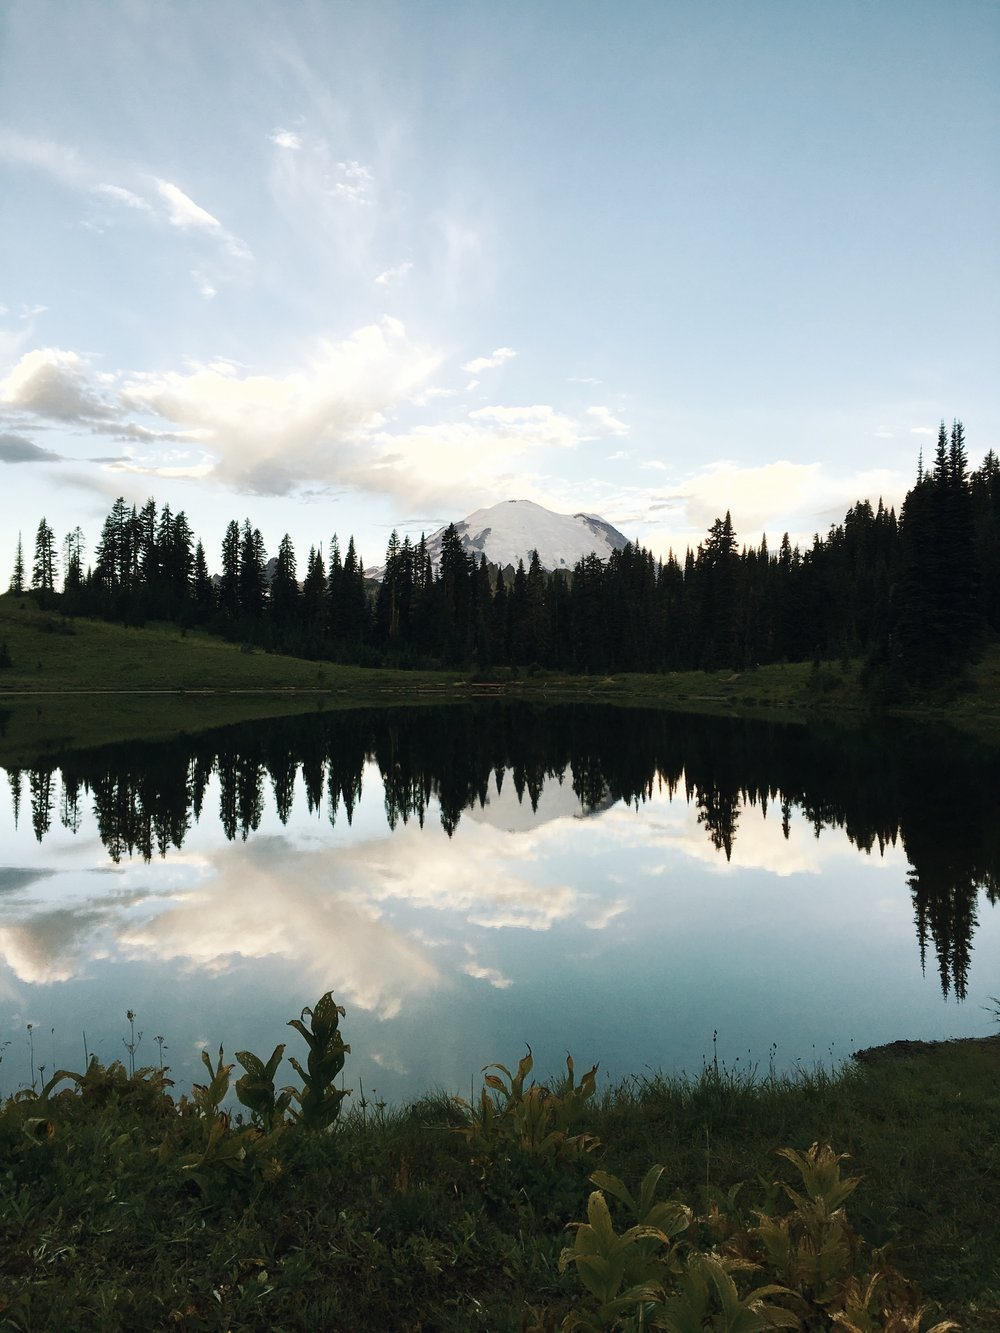 Mount Rainier just after sunrise over Tipsoo Lake, Chinook Pass.